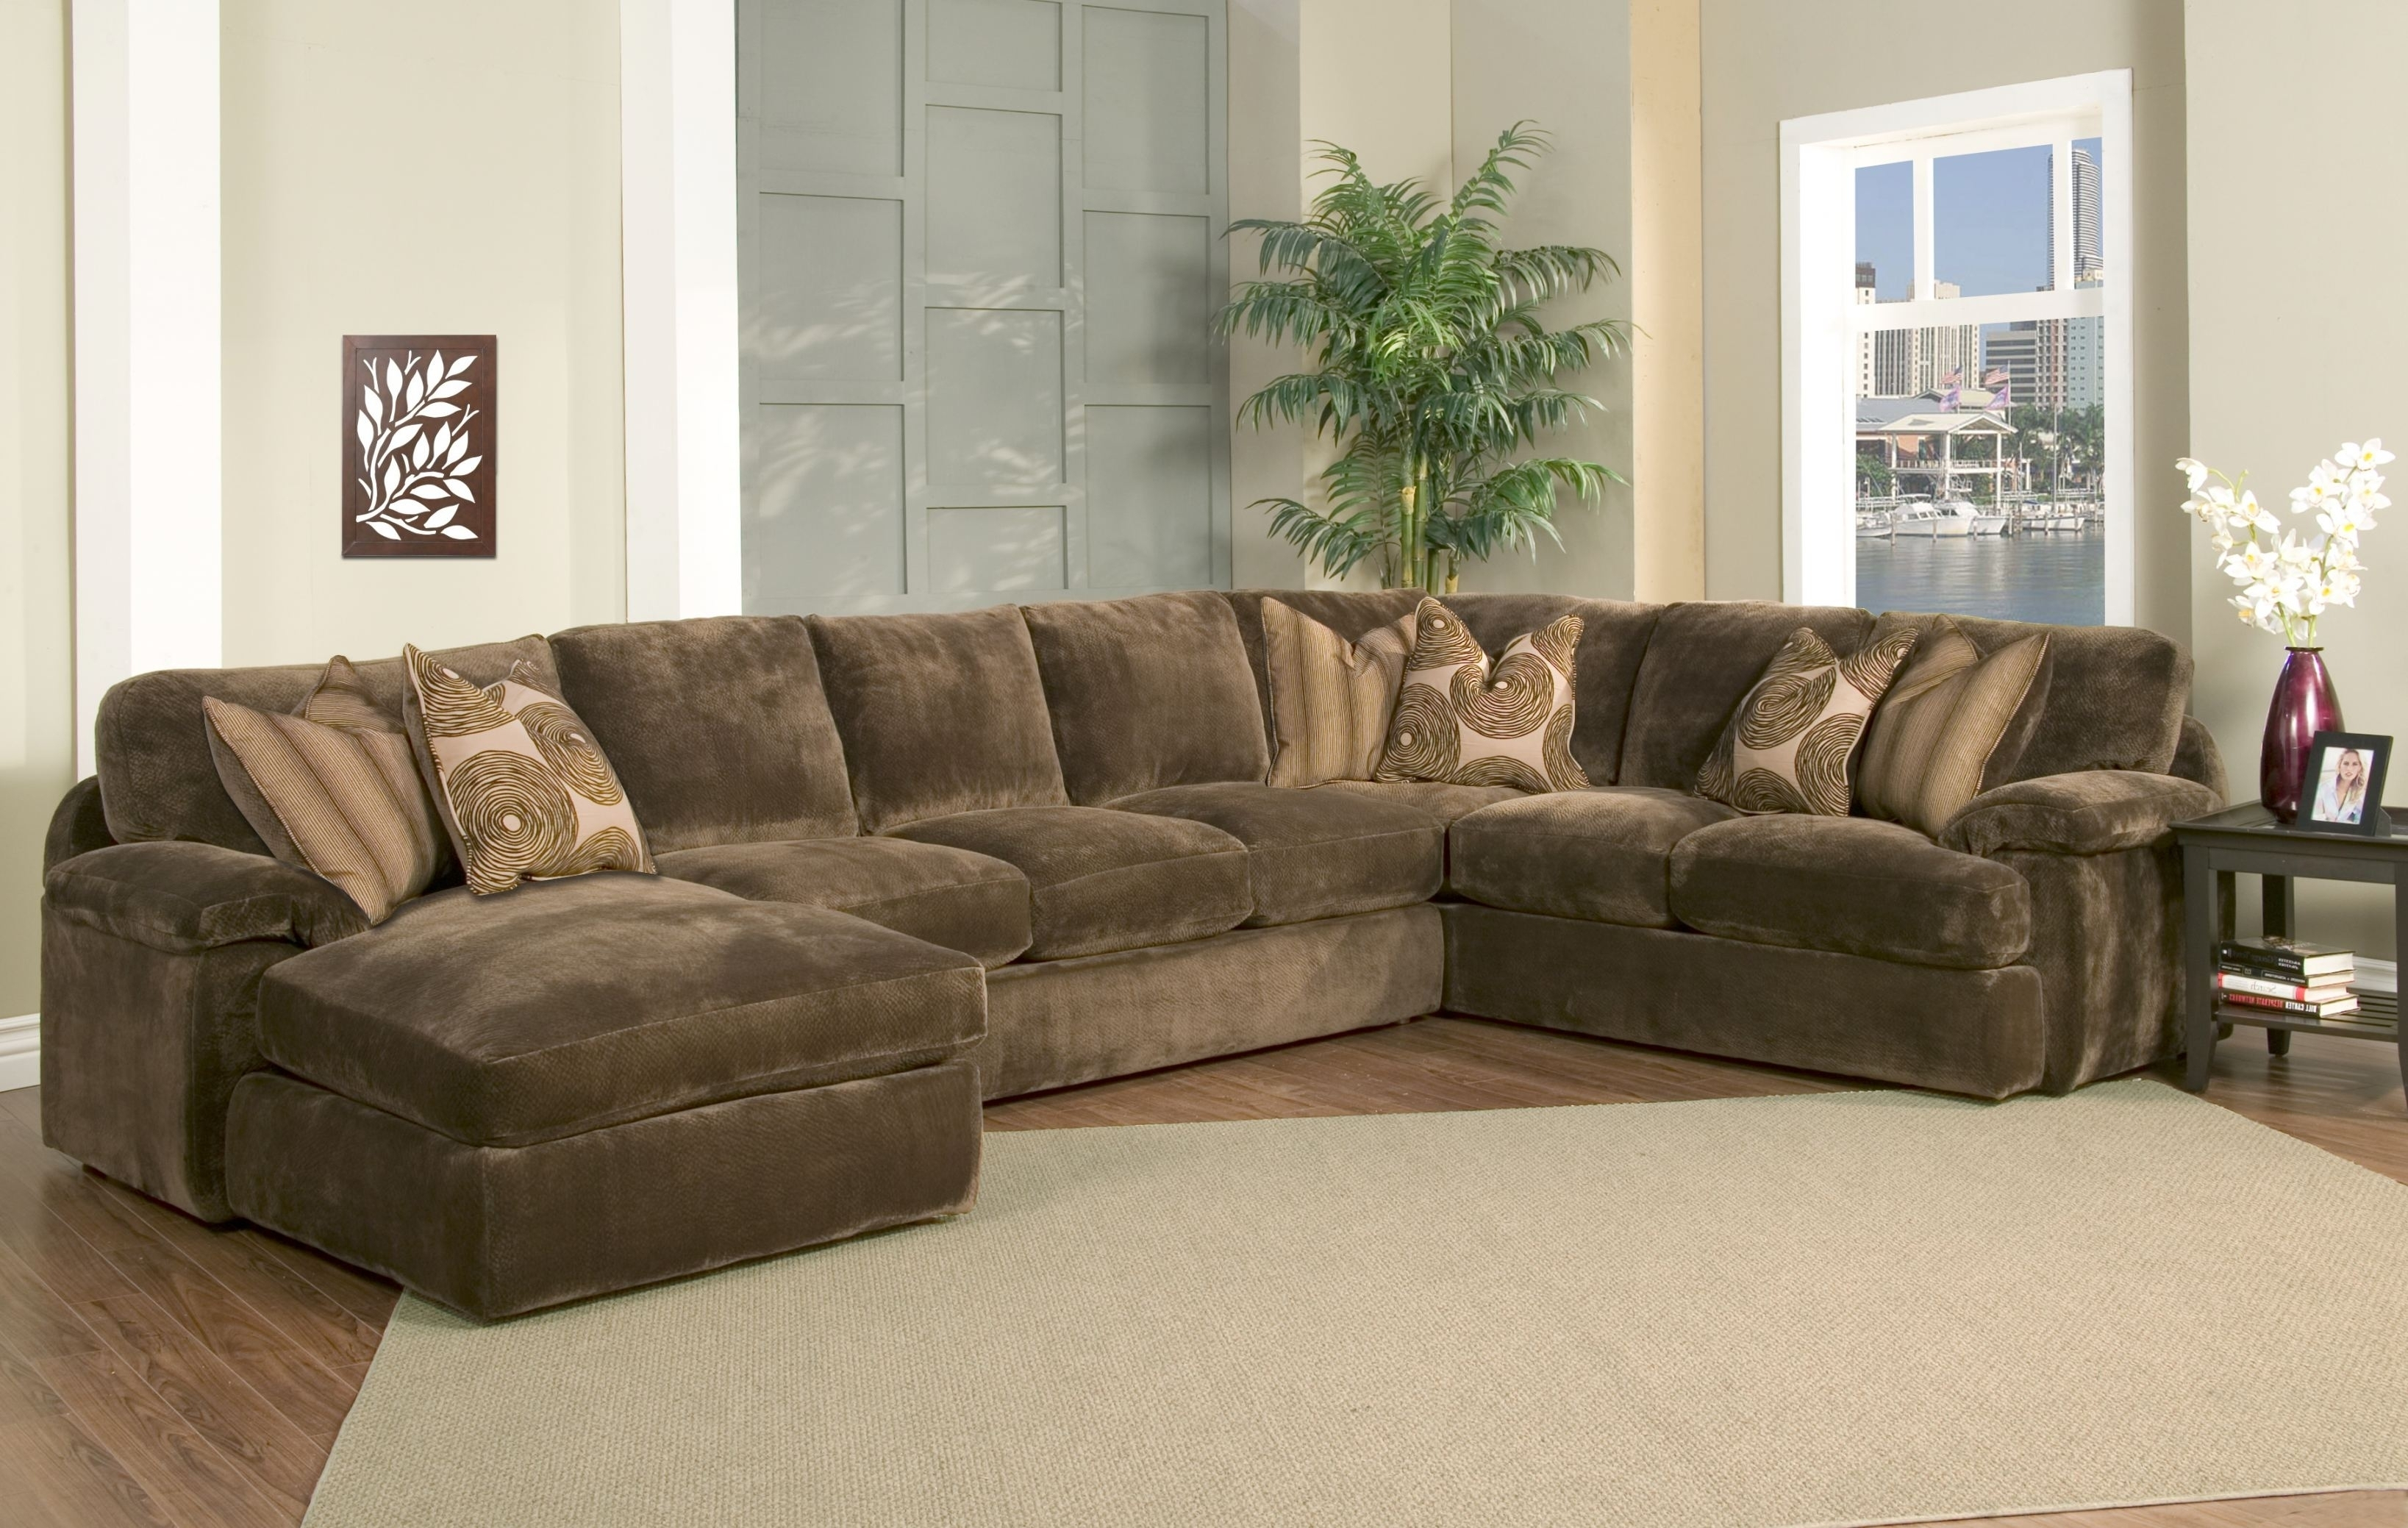 Down Filled Couches Leather Sofa Where To Buy Best Sectional Throughout Harper Foam 3 Piece Sectionals With Raf Chaise (View 24 of 25)